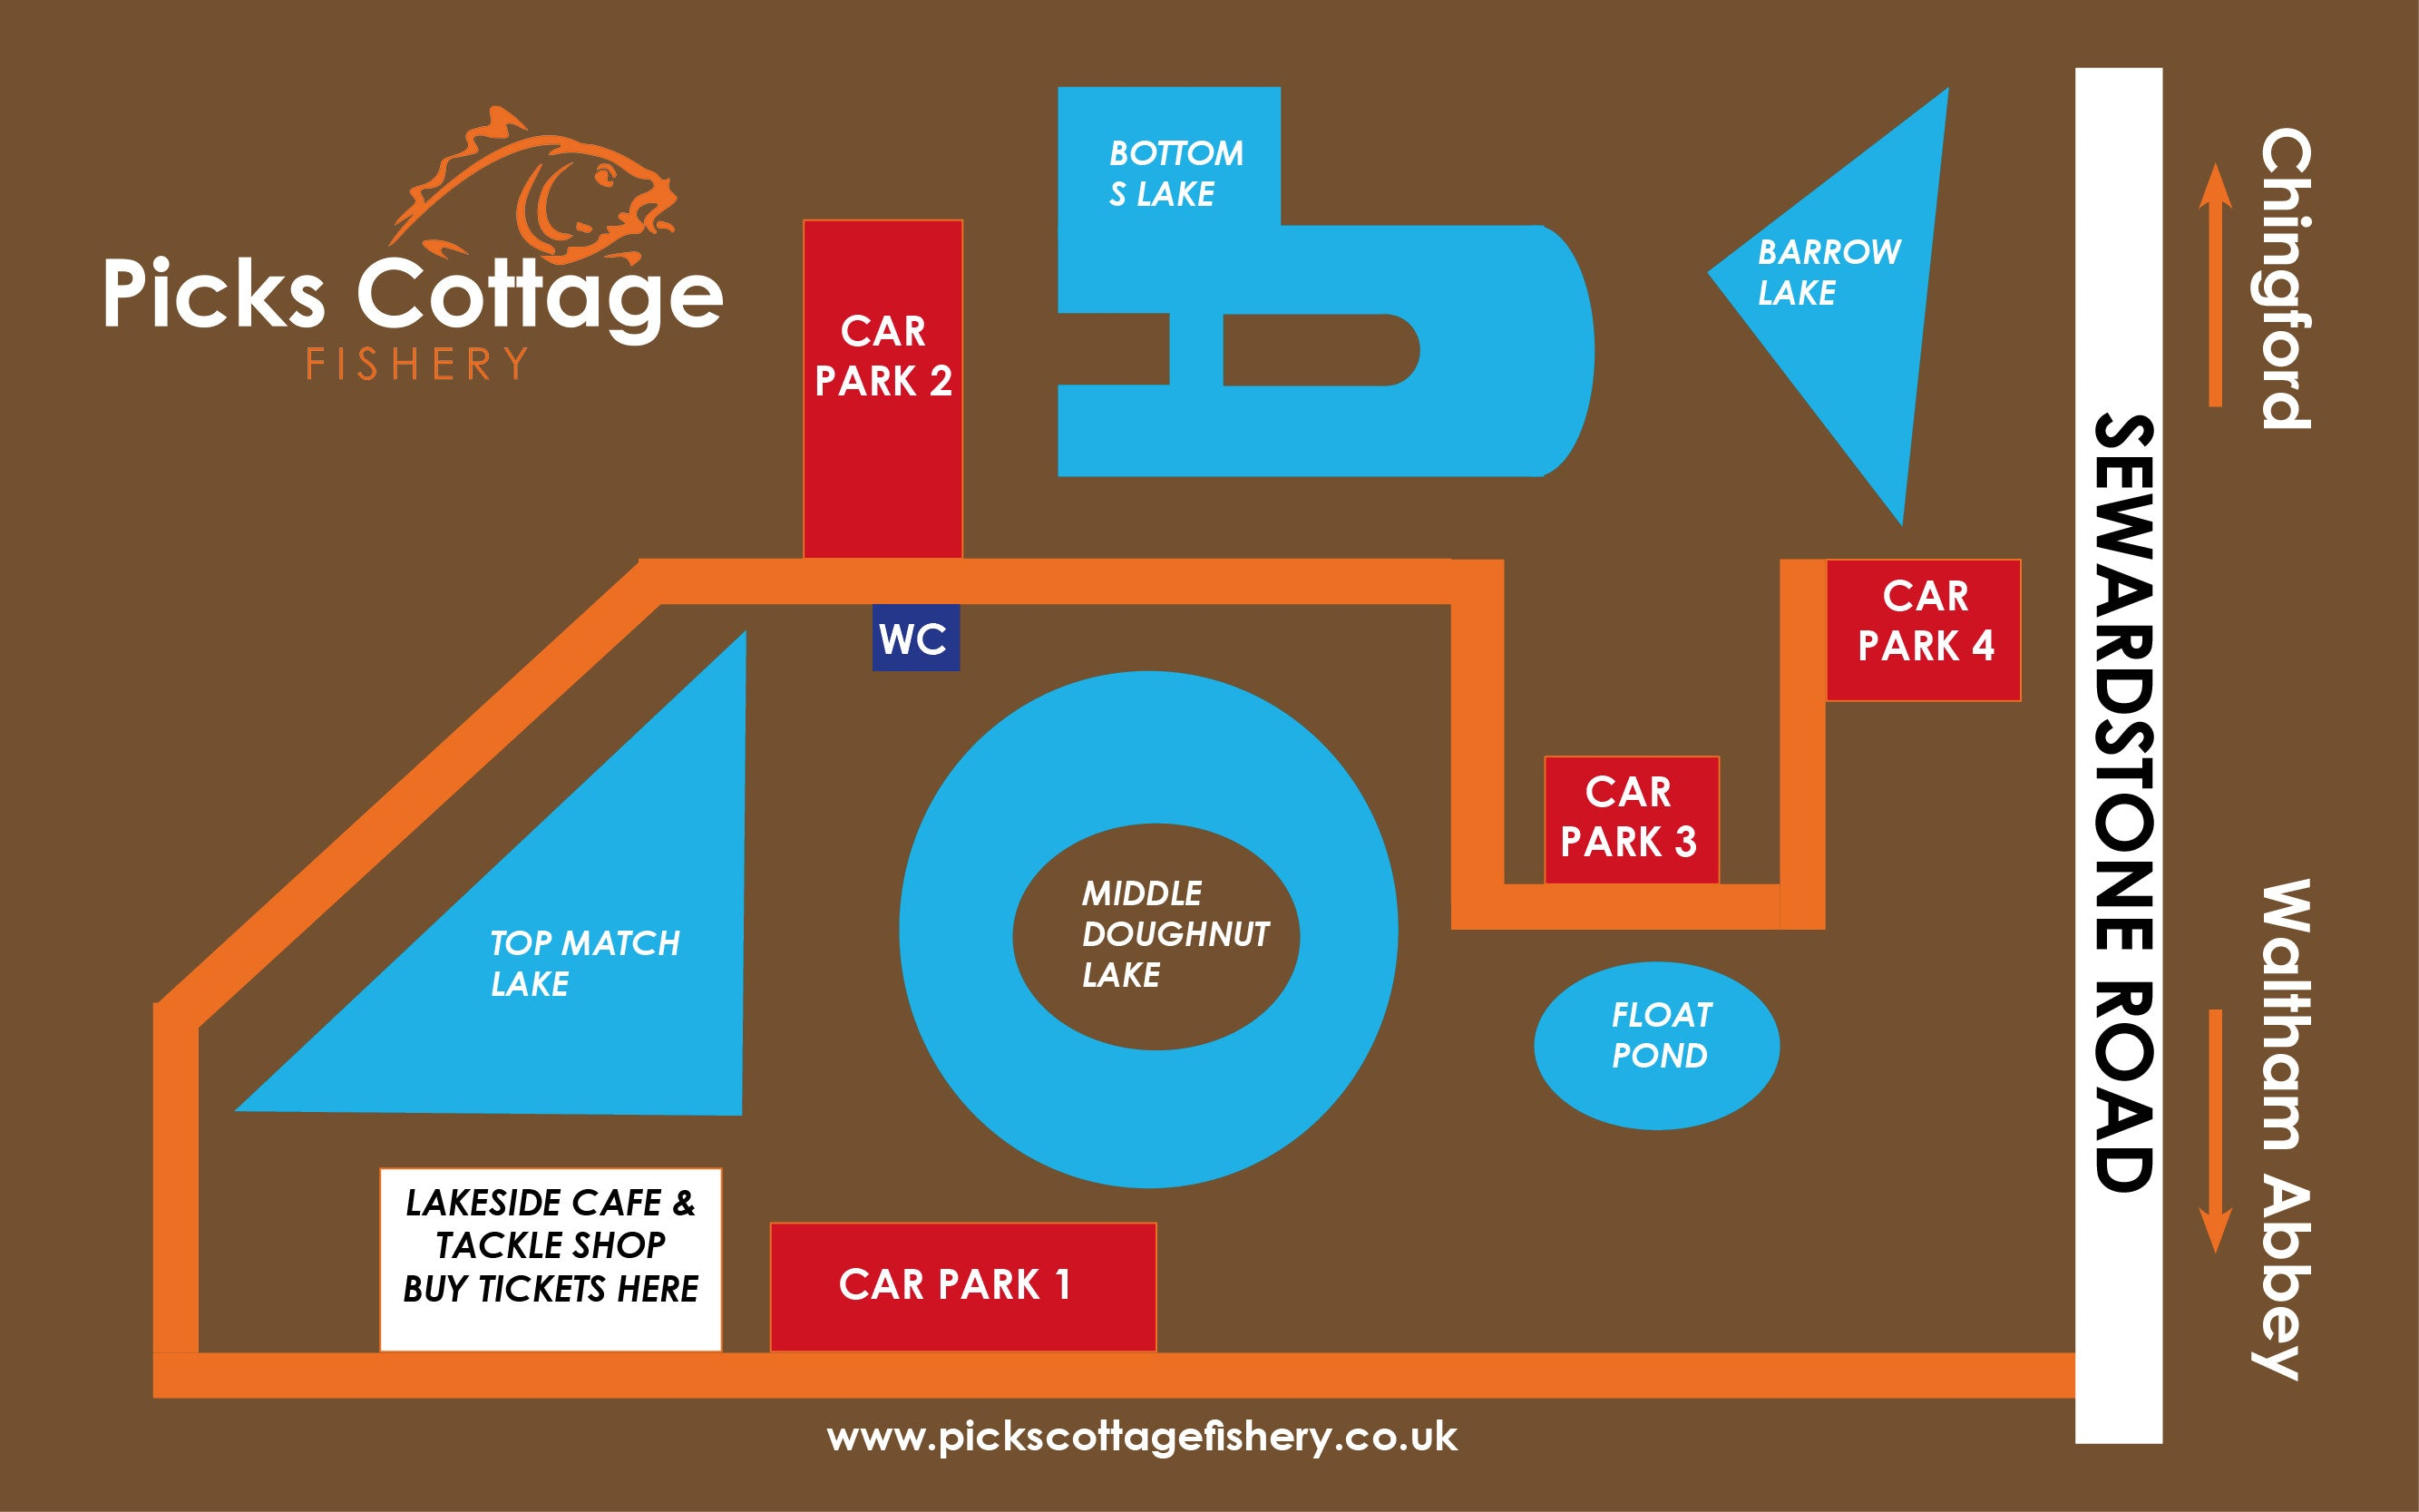 Picks Cottage Fishery Map